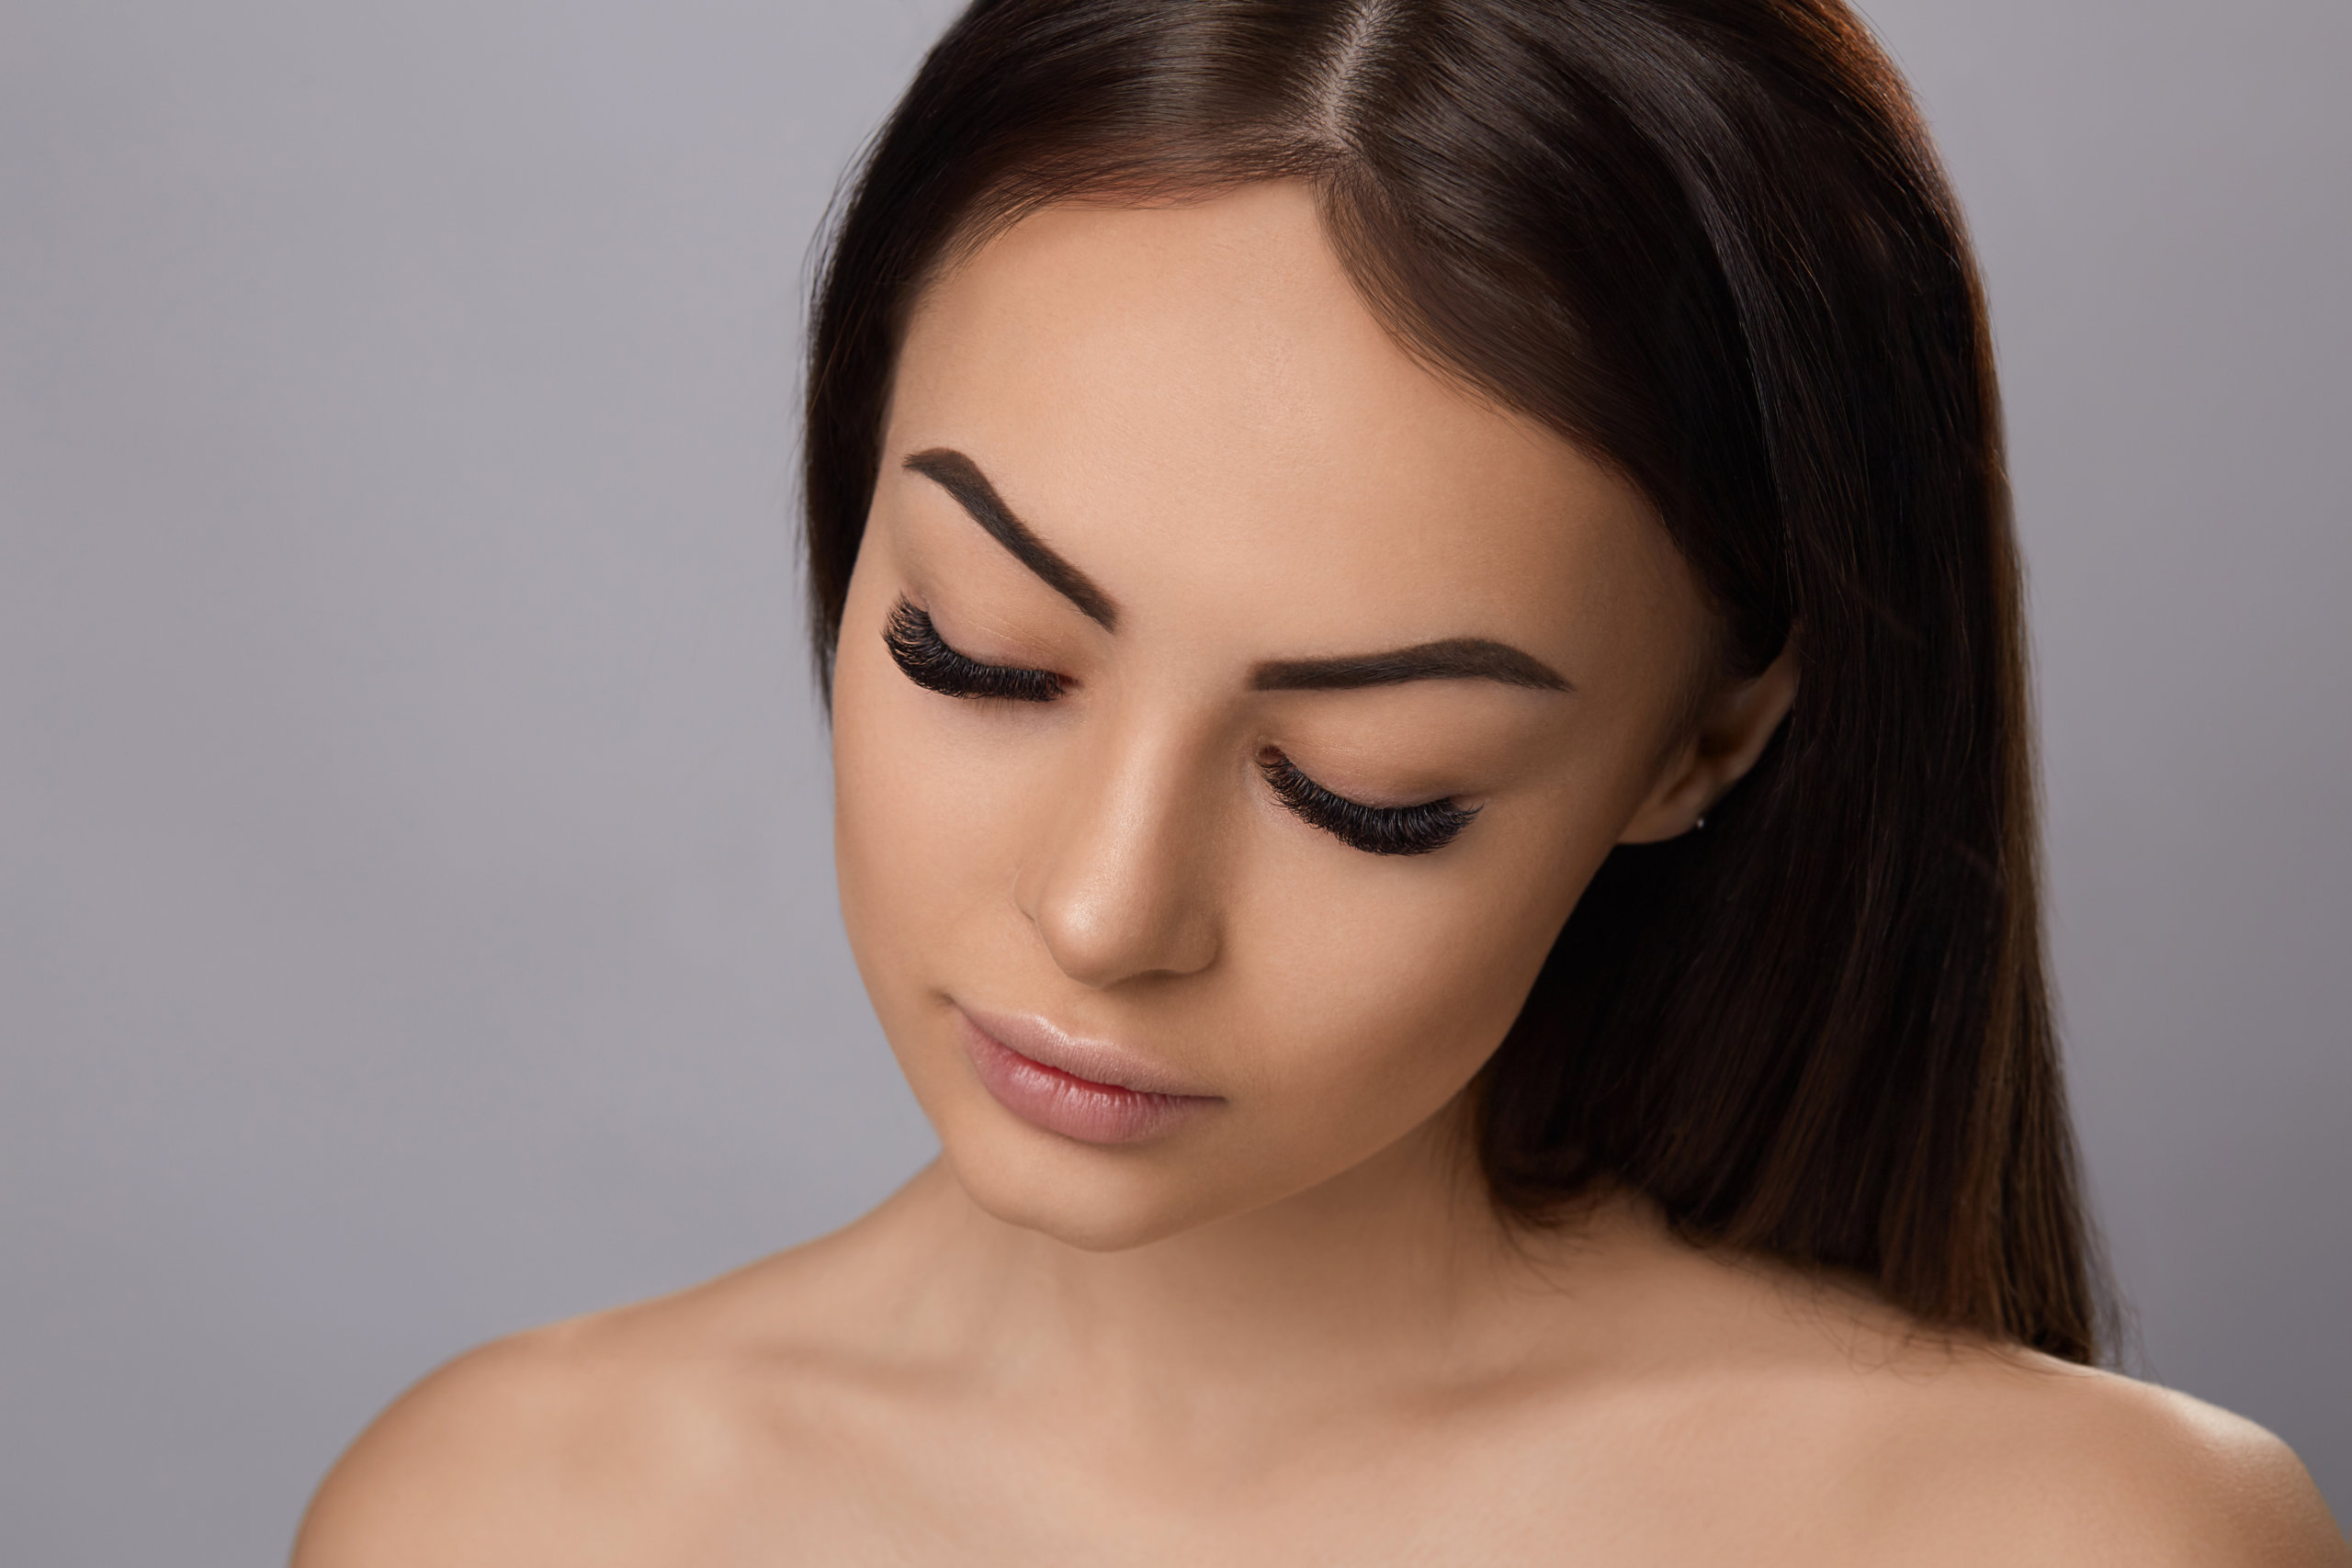 Eyelash Extensions In Singapore: What Do I Need To Know ...